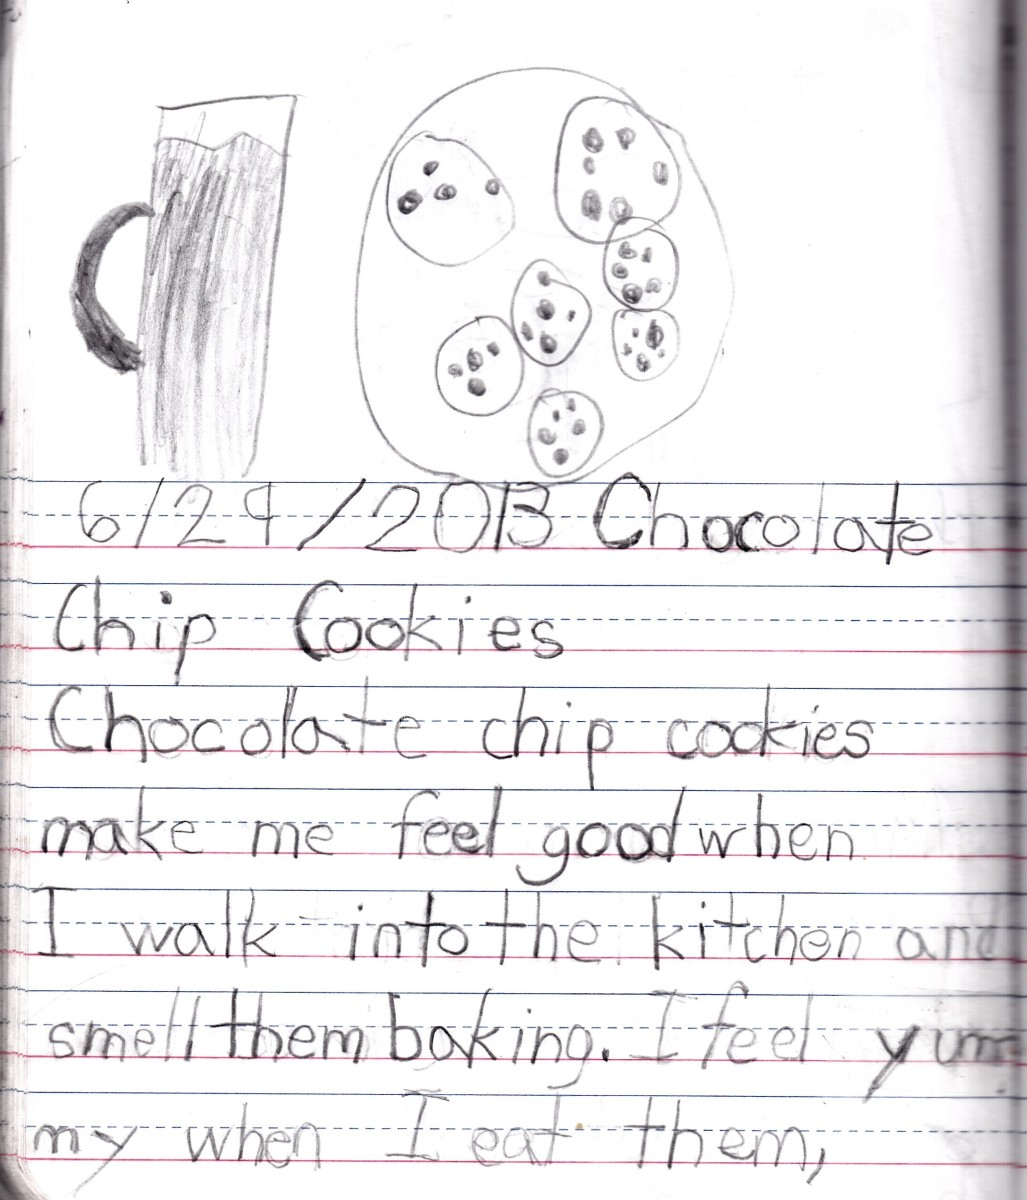 Page 1 of my daughter's journal entry about Chocolate Chip Cookies